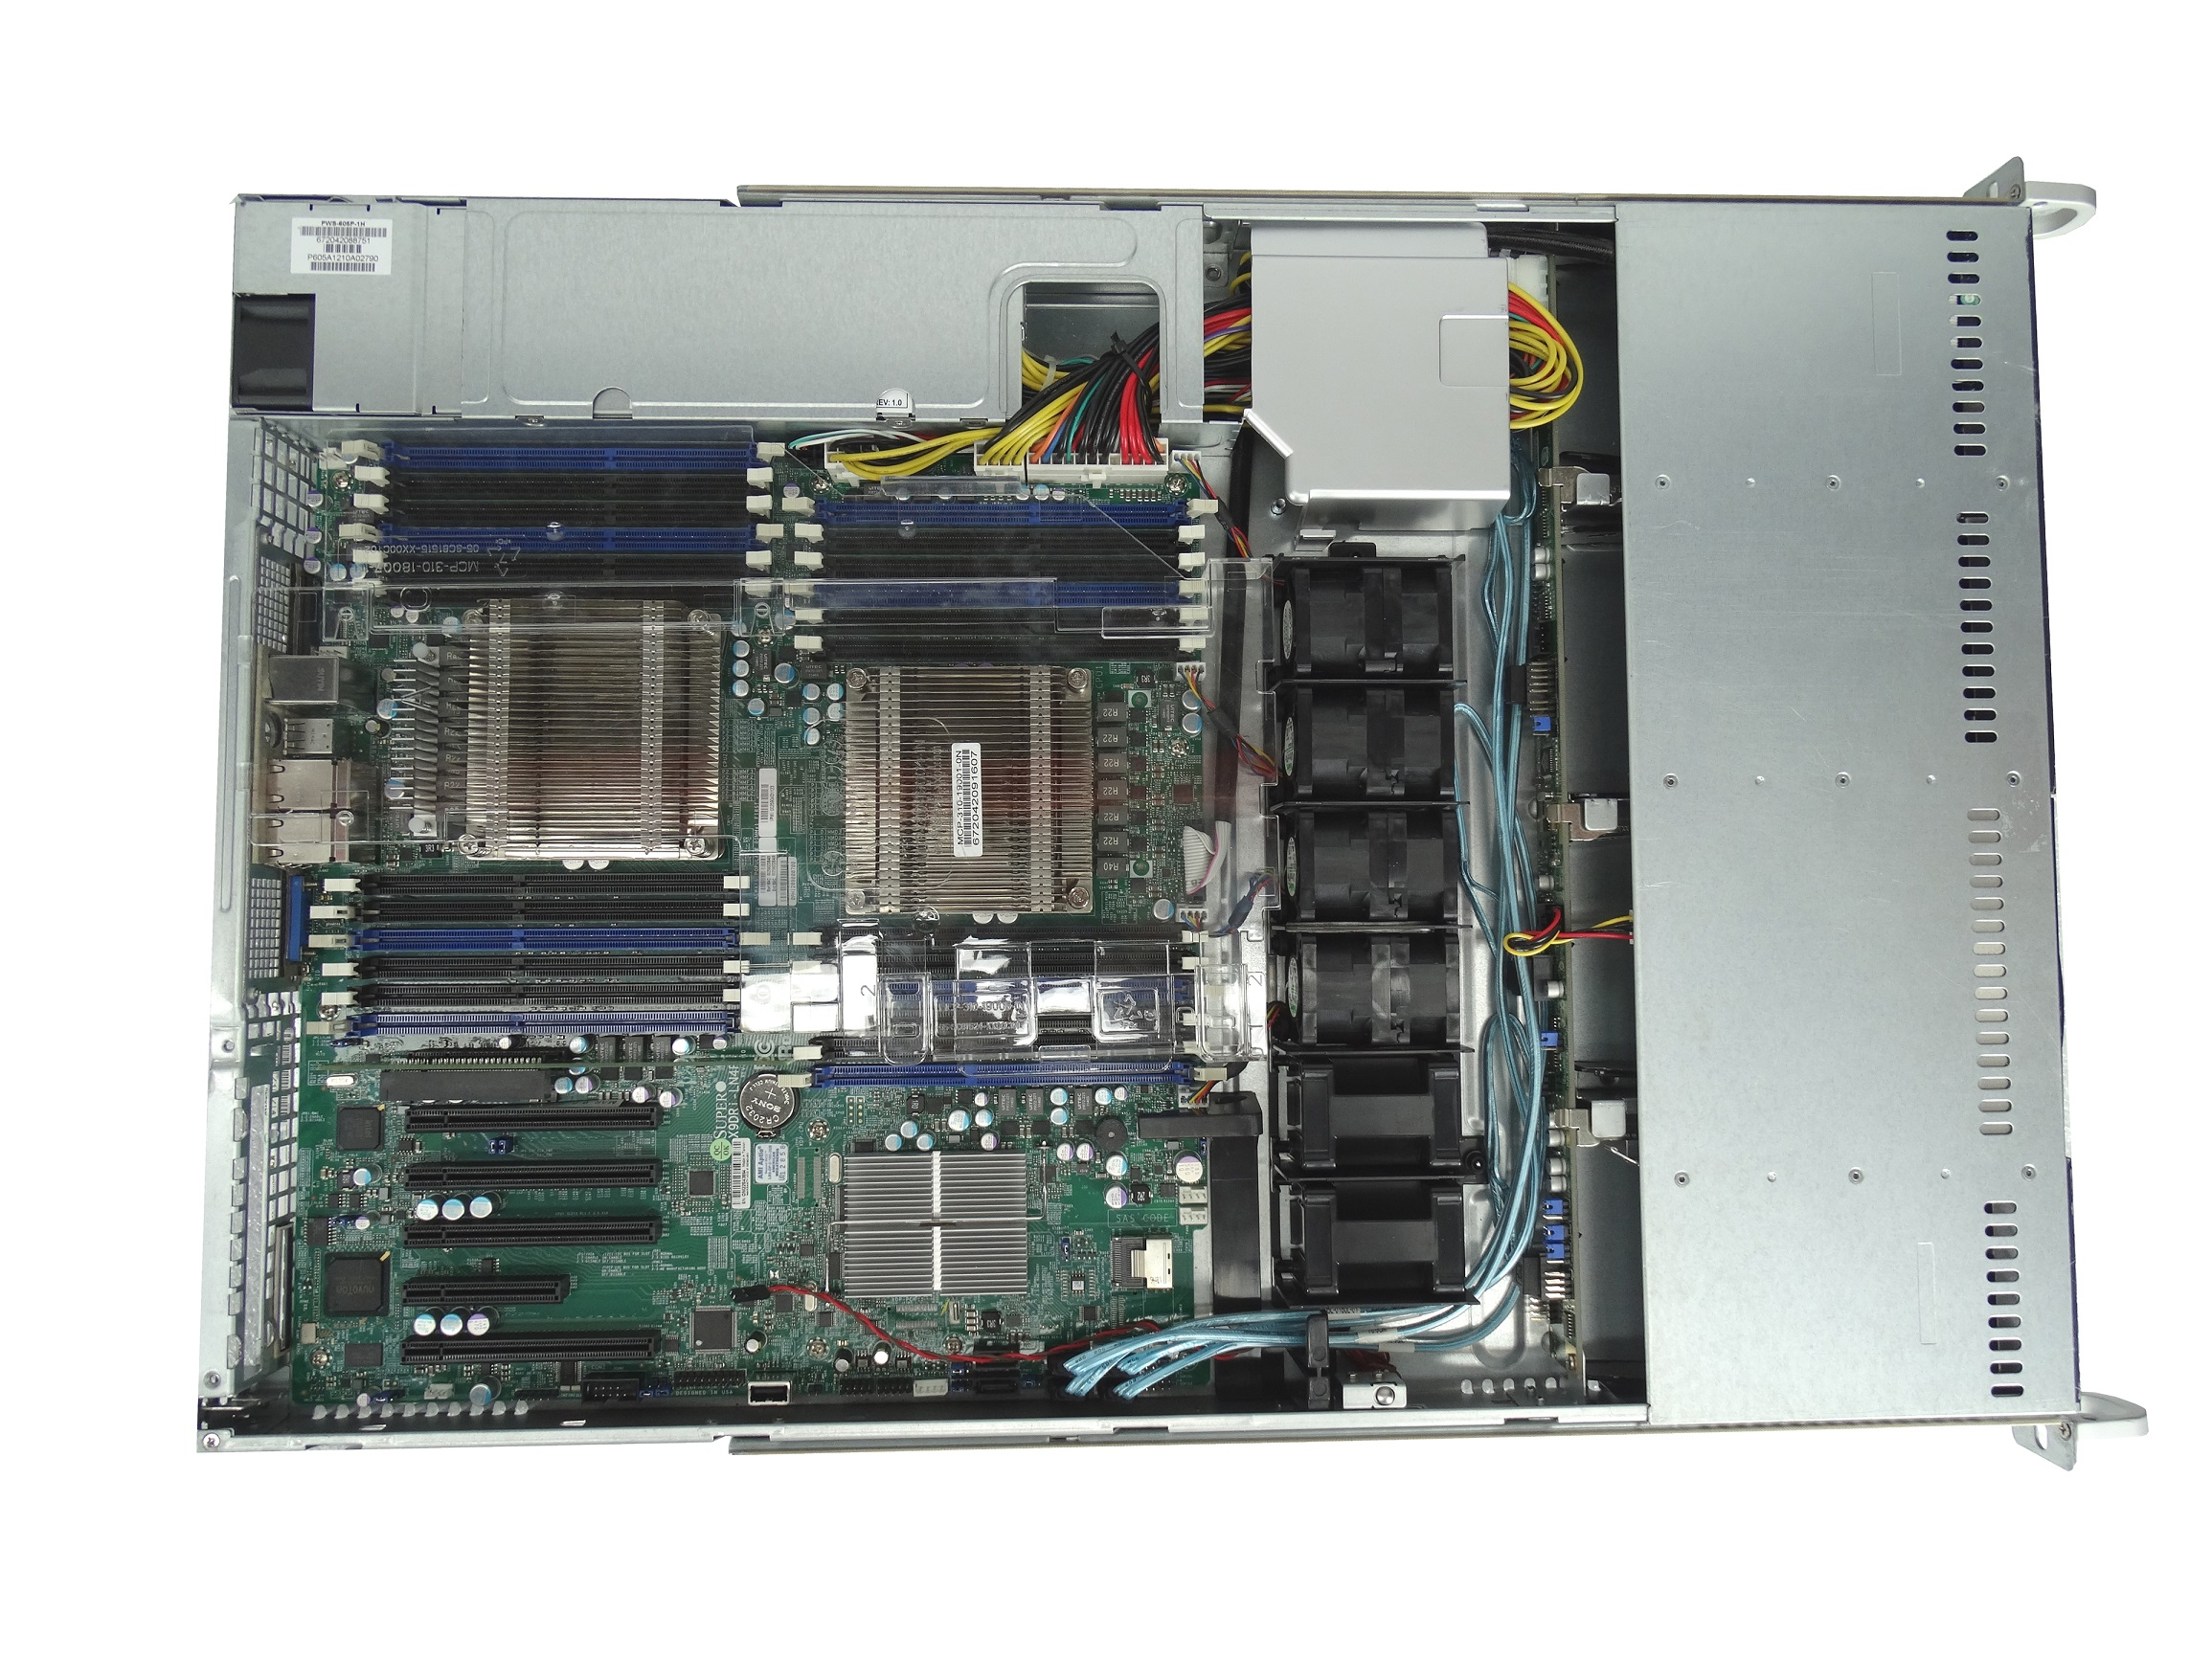 Supermicro SuperChassis CSE-815TQ 4-Bay 1U Rackmount Server with  X9DRi-LN4F+ Motherboard